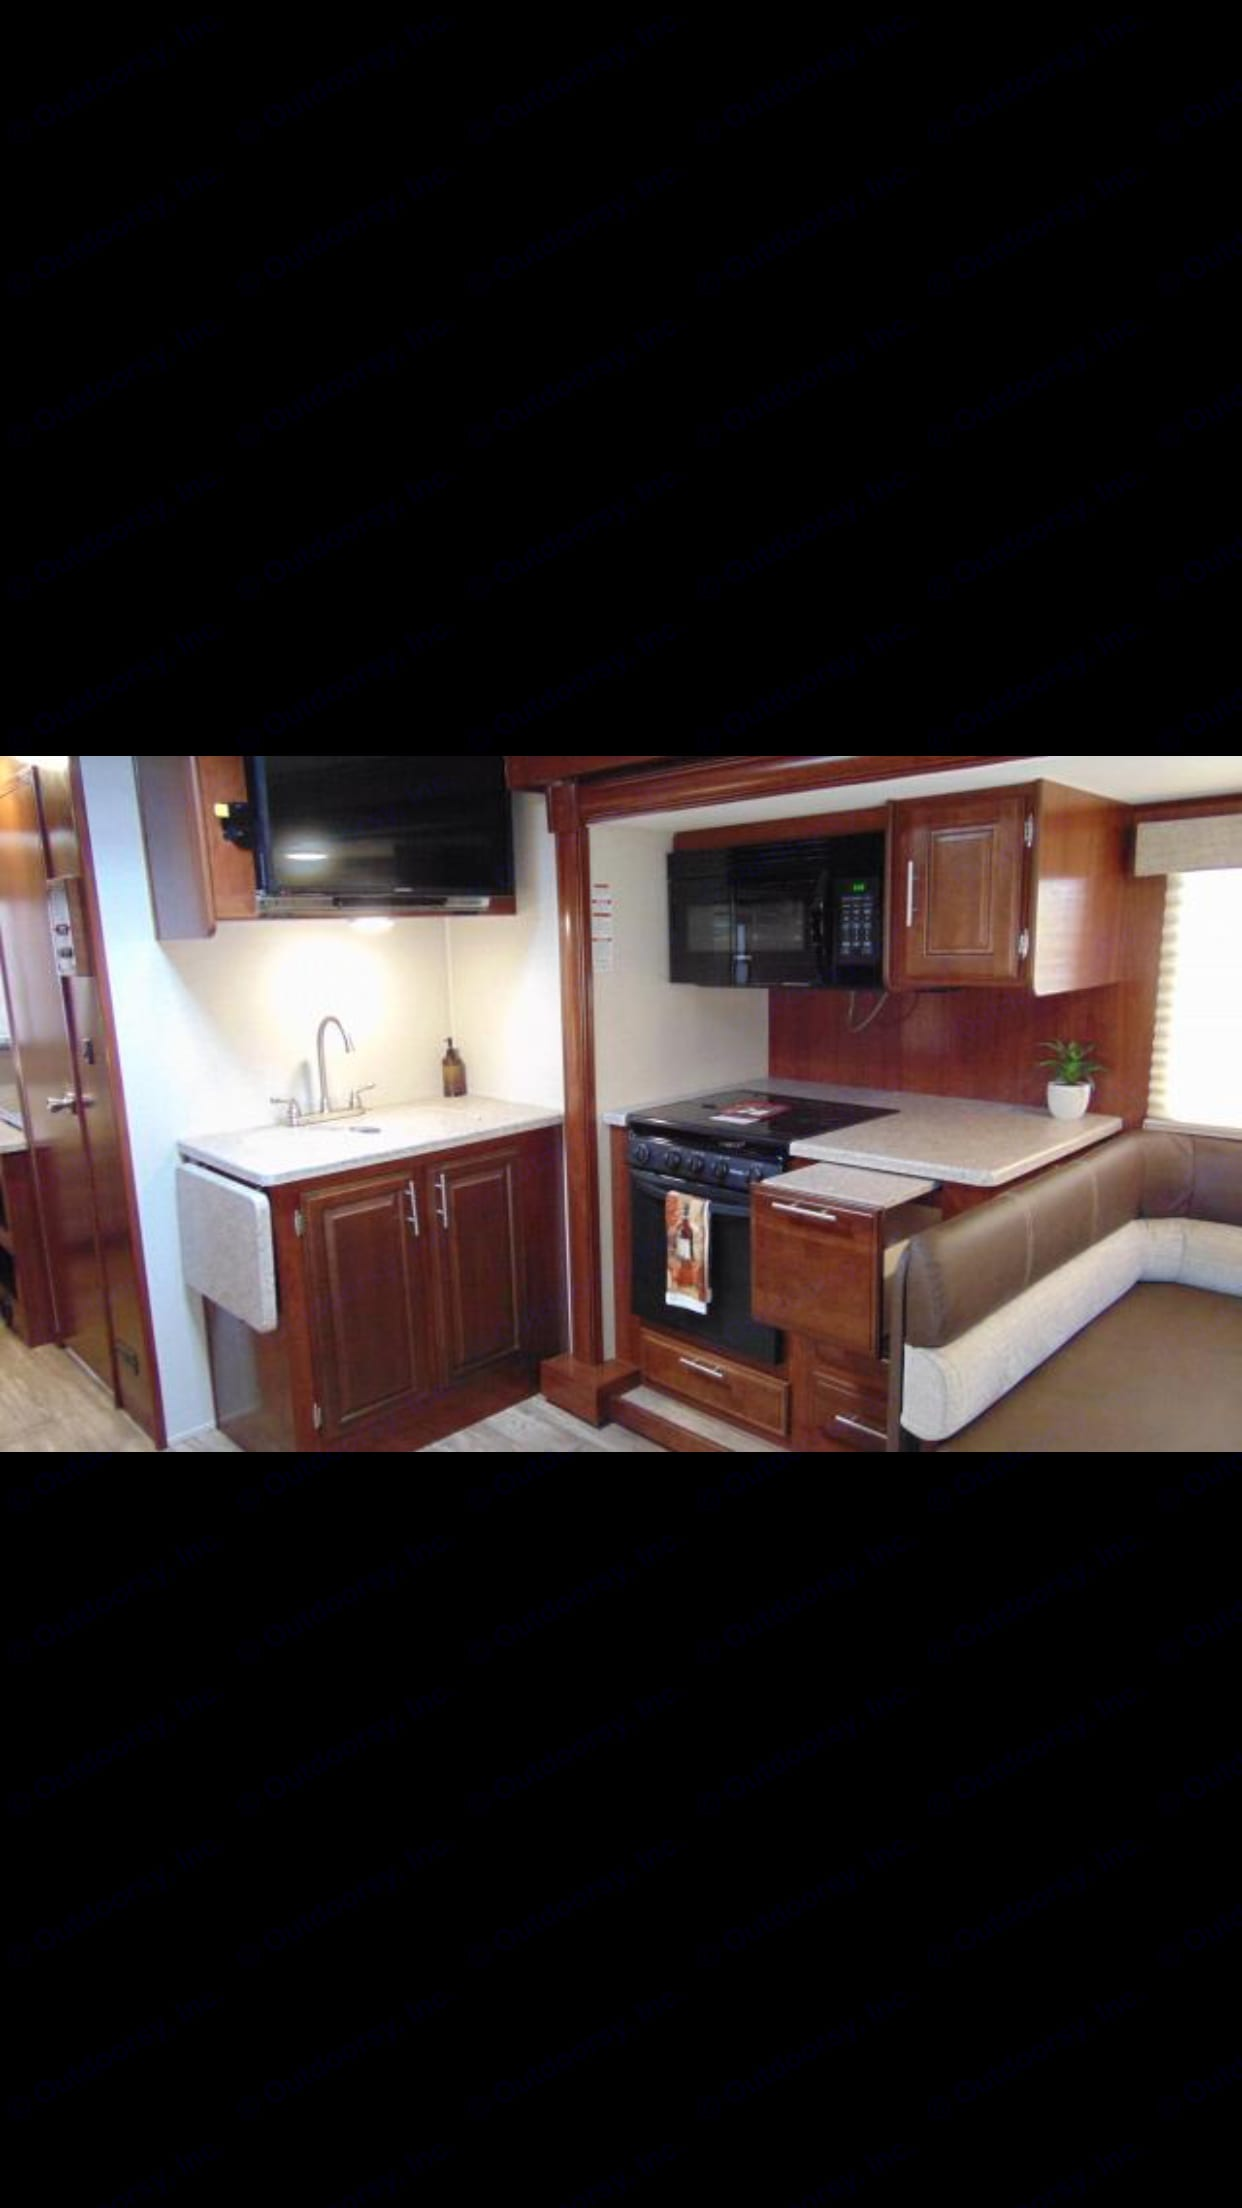 Kitchen with full size microwave, cooktop and oven. Forest River Fr3 2016